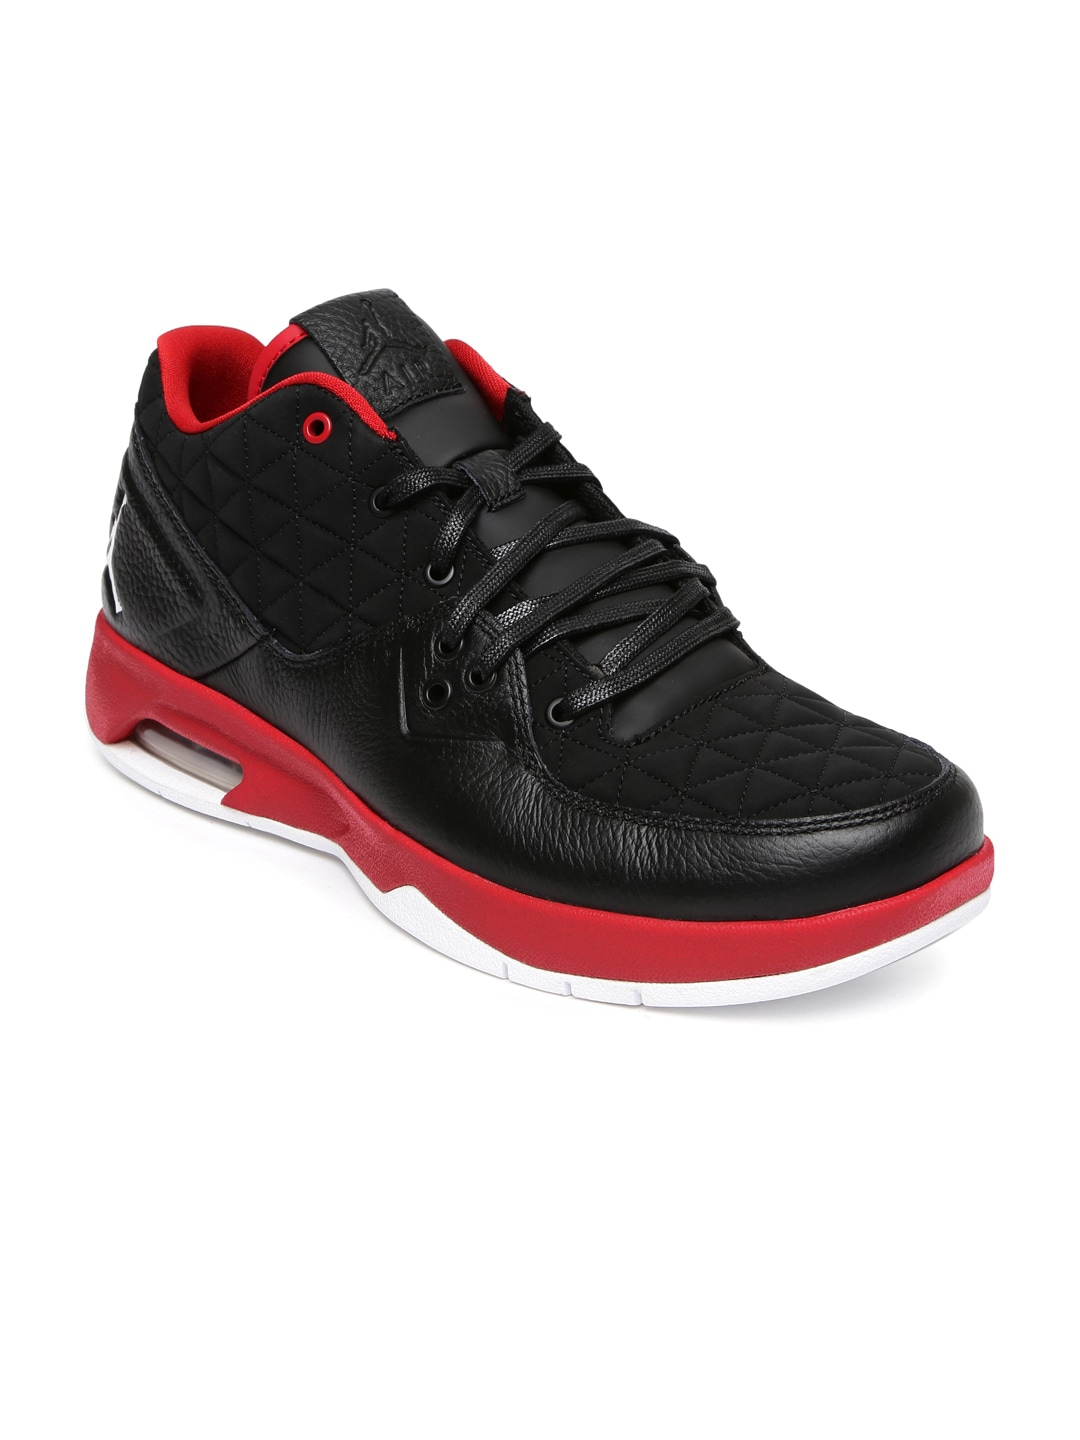 Basketball Shoes India Cheap